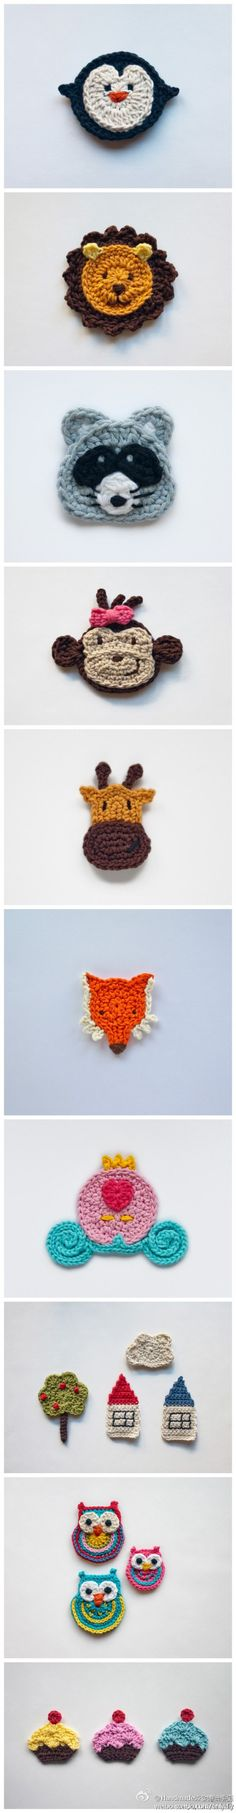 Simple, easy, cute crochet 2D critters                                                                                                                                                     More